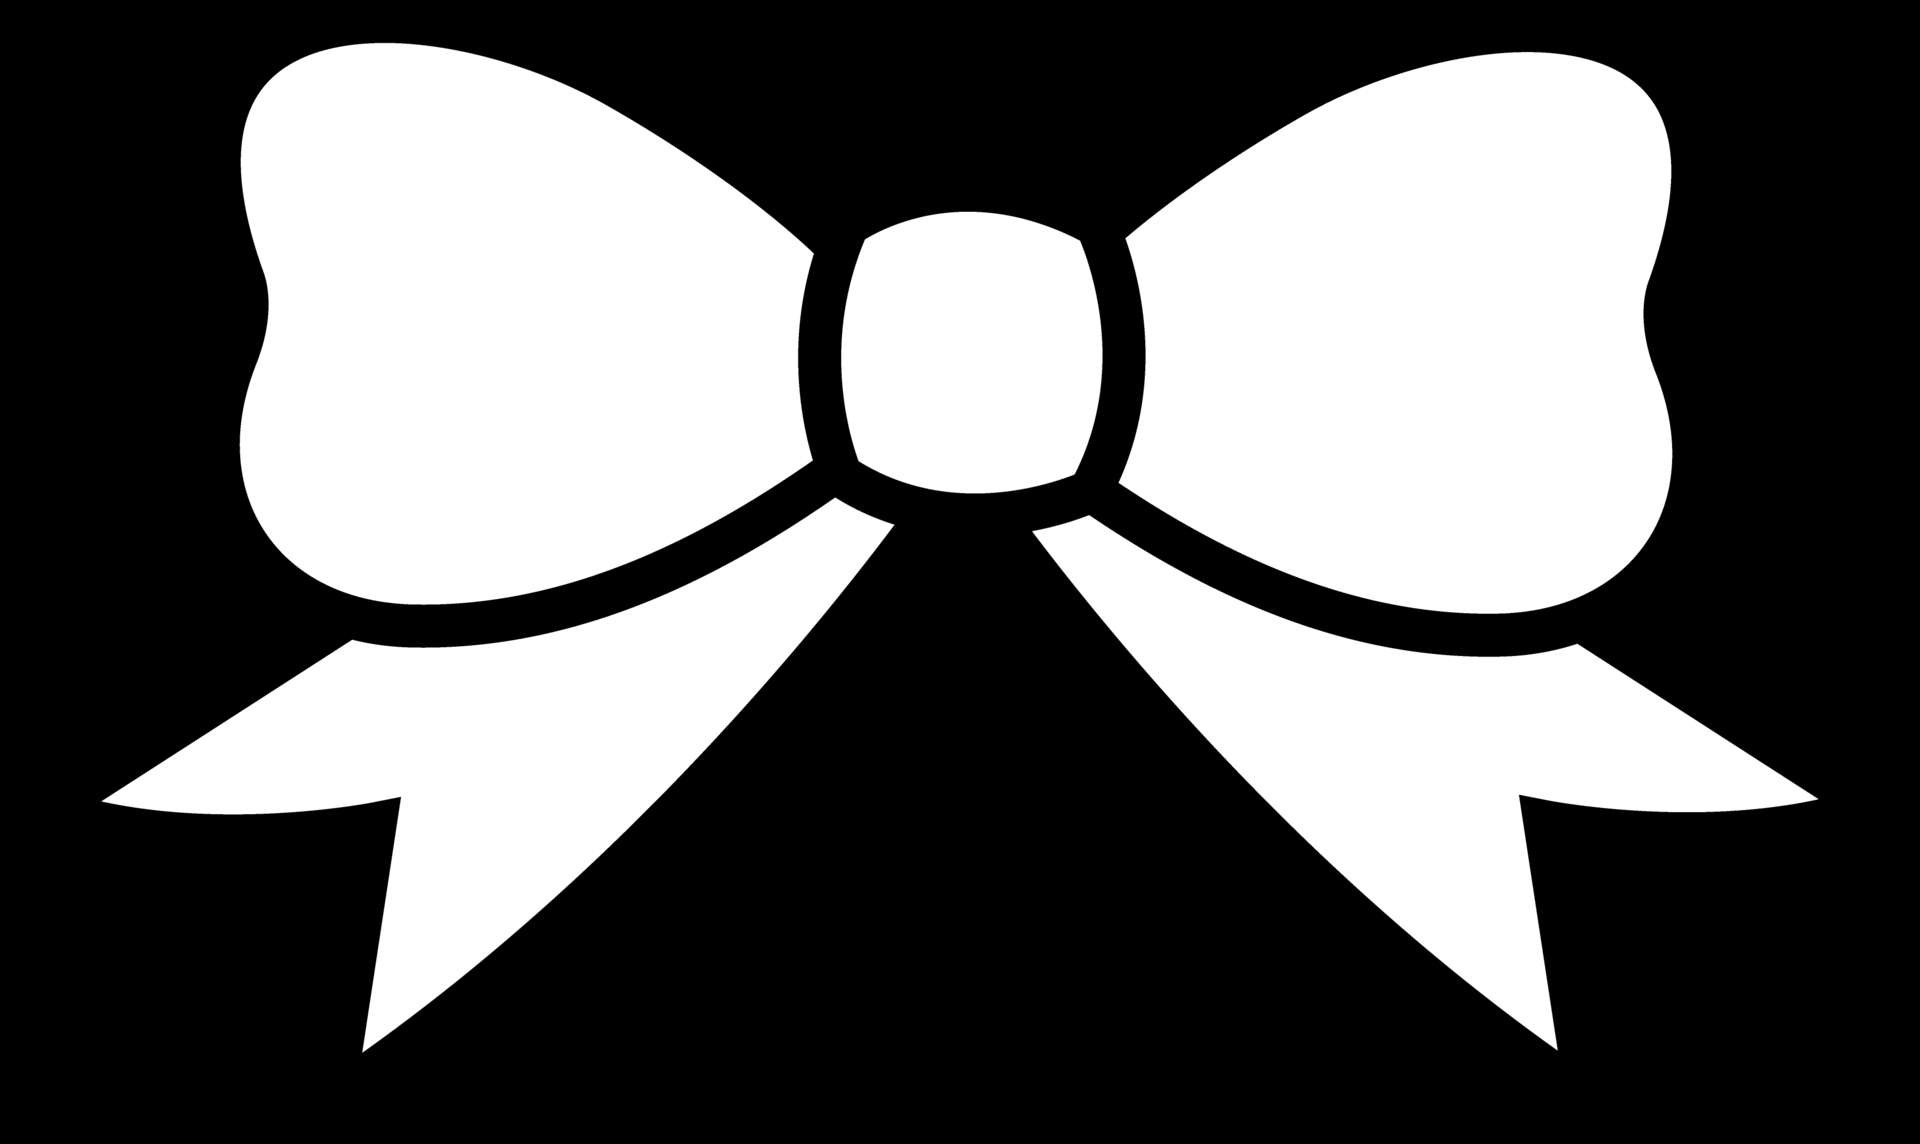 bow clipart black and white-bow clipart black and white-9